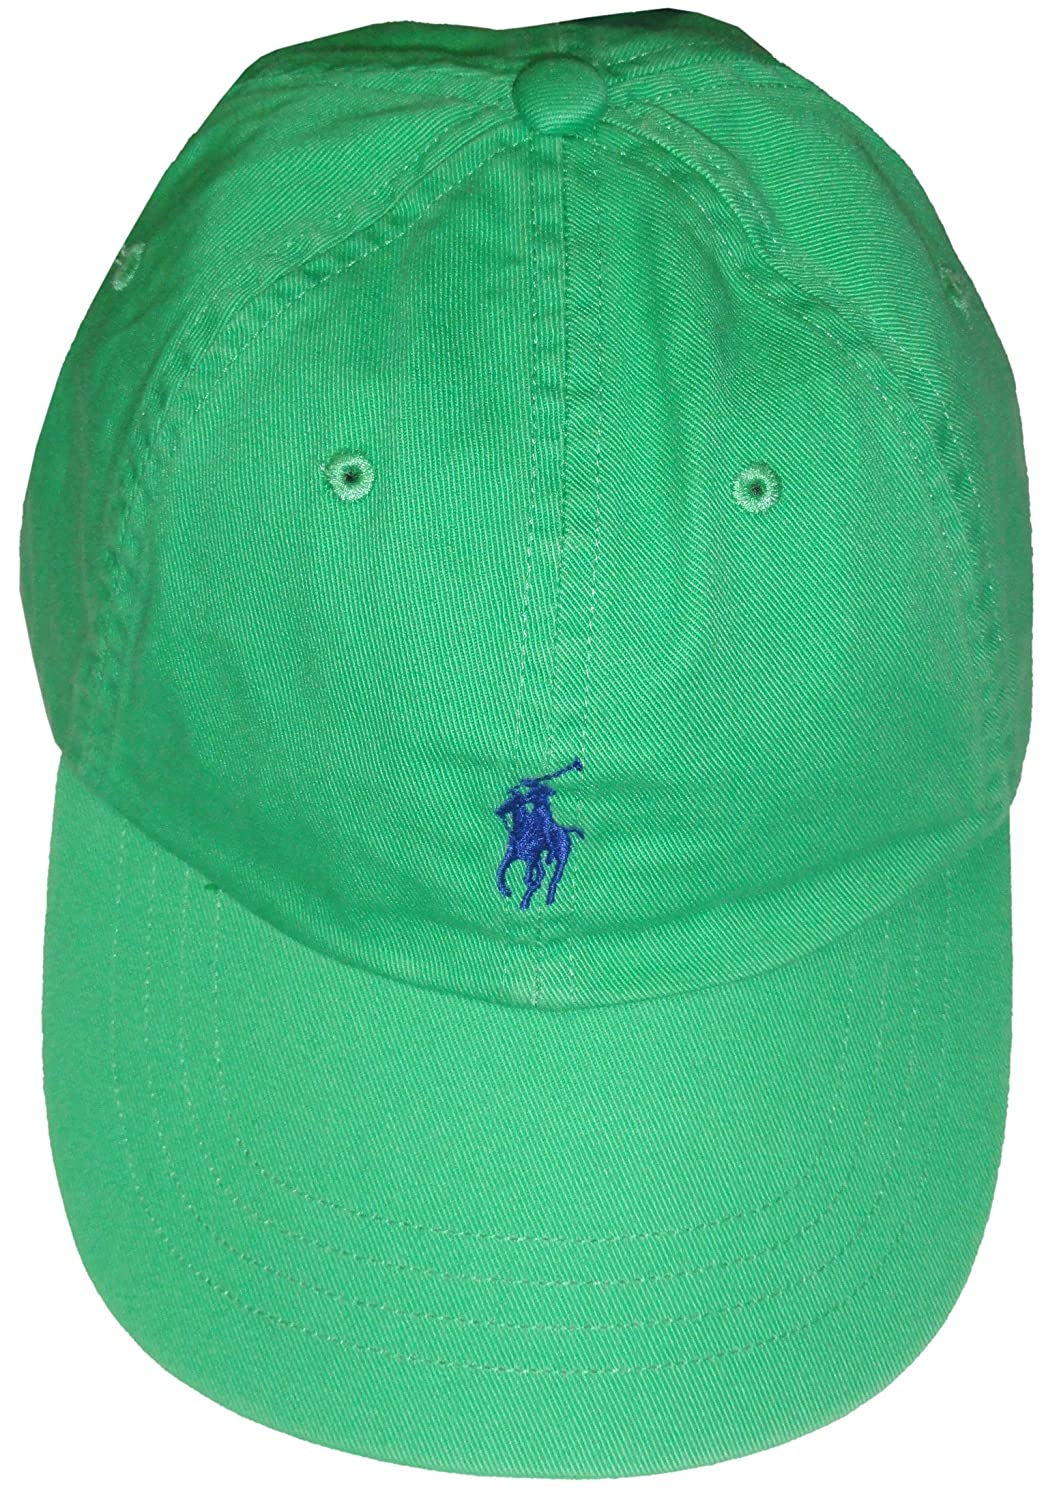 f54ec242594 Amazon.com  Polo by Ralph Lauren Men s Hat Ball Cap Green with Blue Pony   Clothing